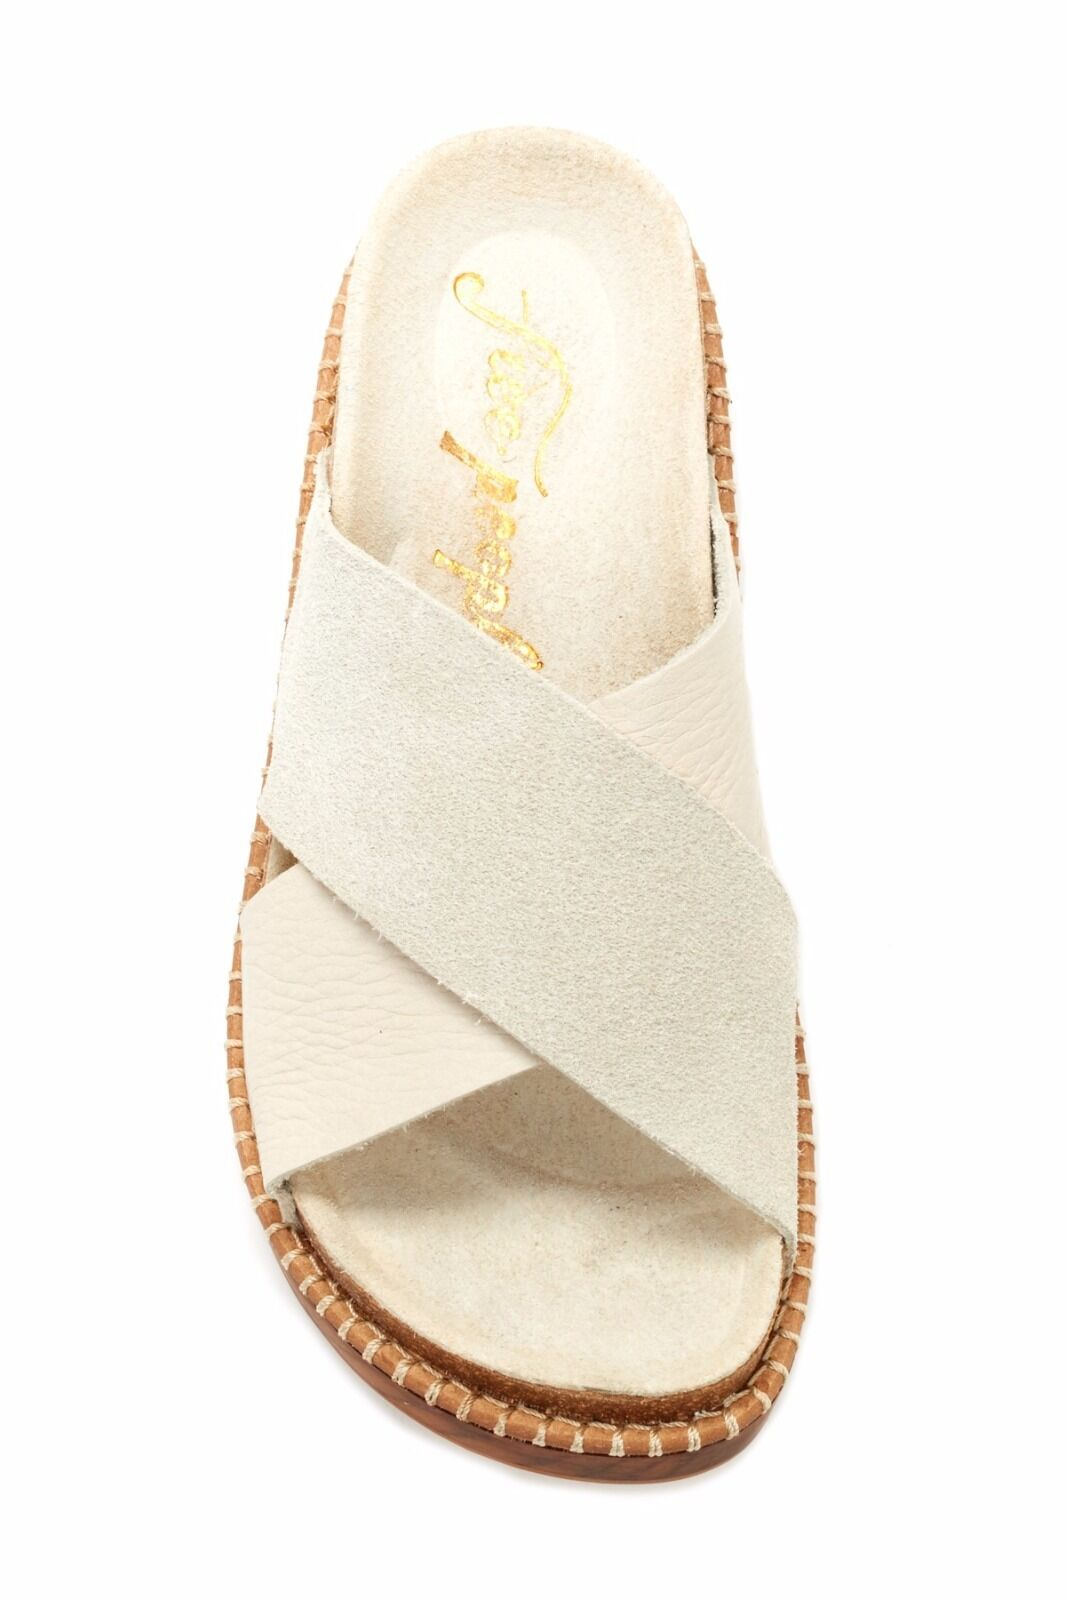 Free People Women's Brickell Brickell Brickell Brickel Footbed Sandal Suede Leather Sz 36 US 6.5 dbeb8f